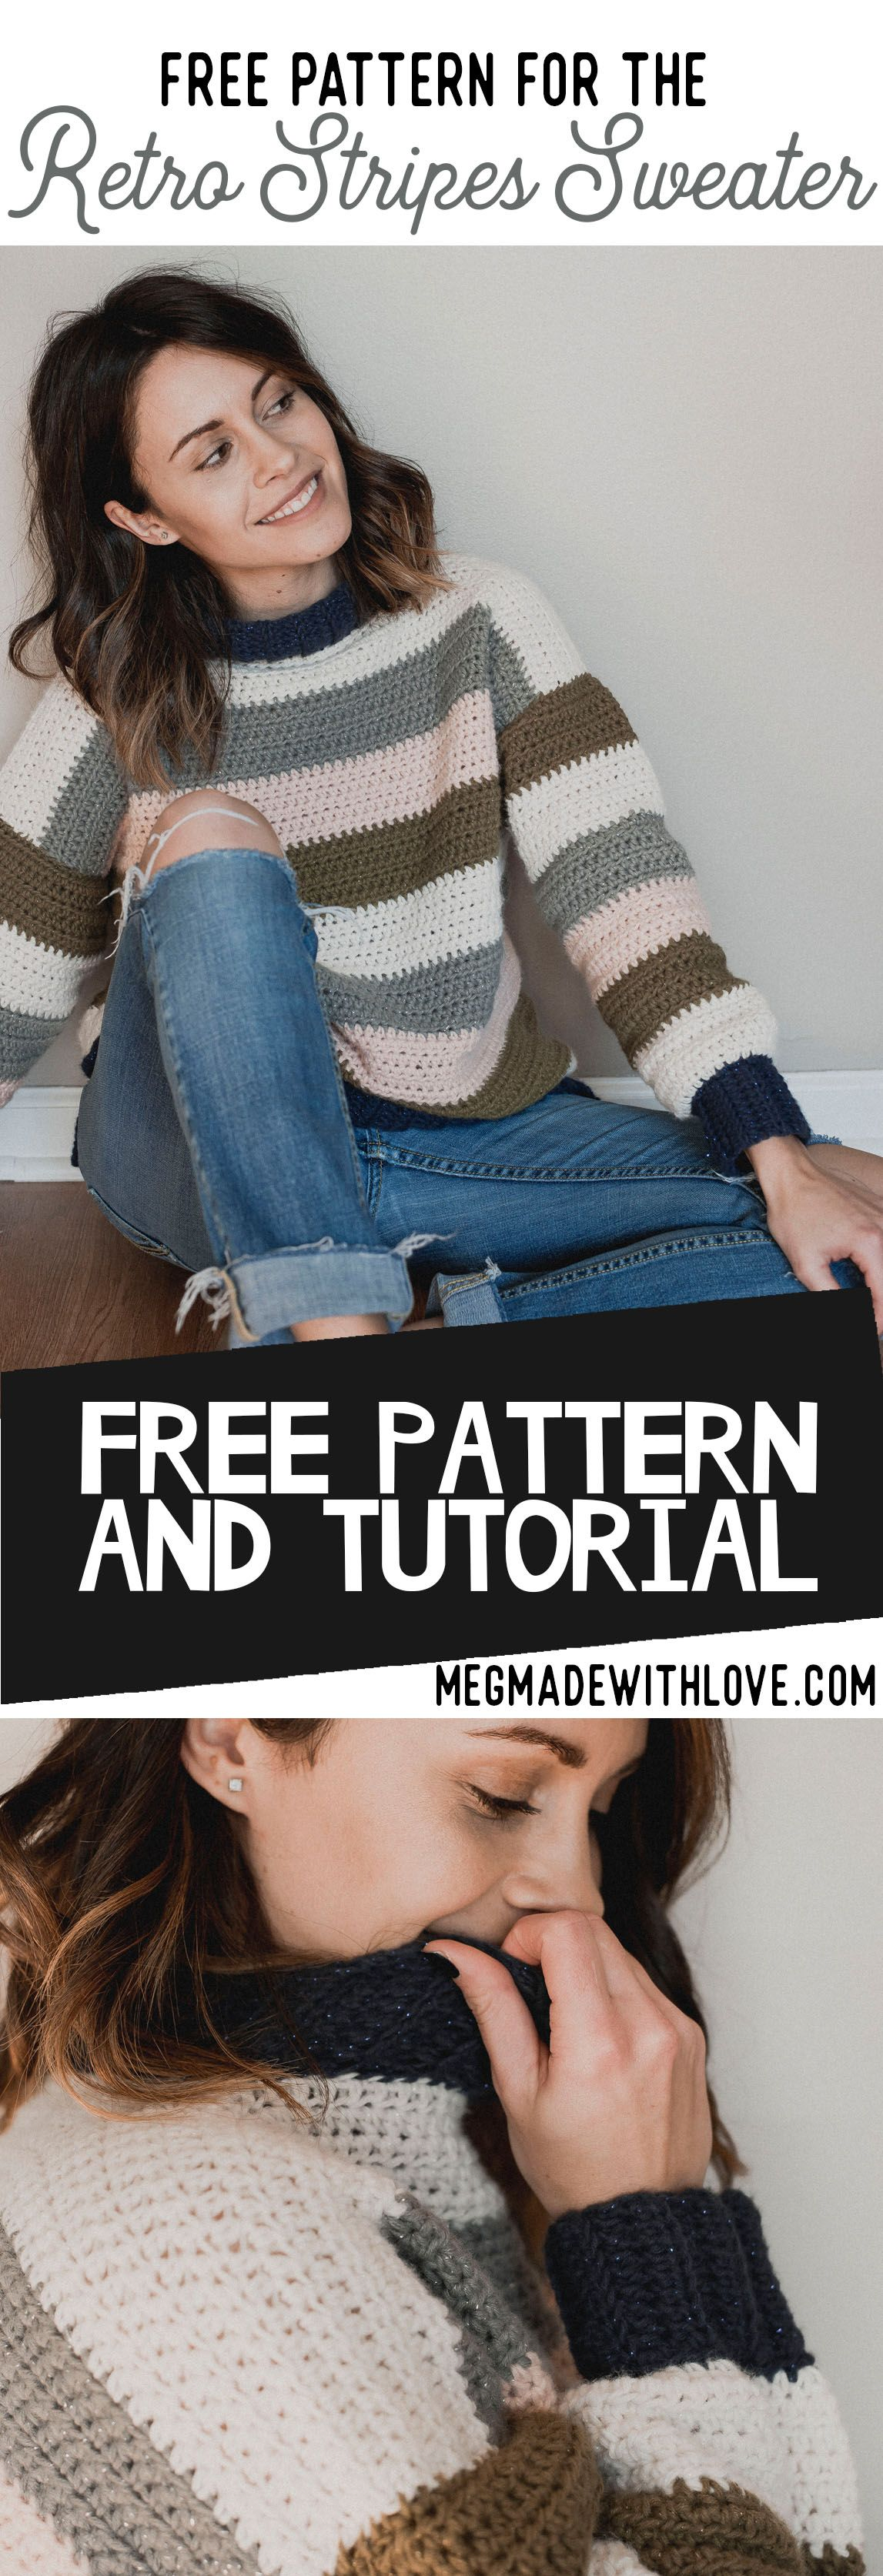 Free Crochet Pattern - Retro Stripes Sweater #sweatercrochetpattern